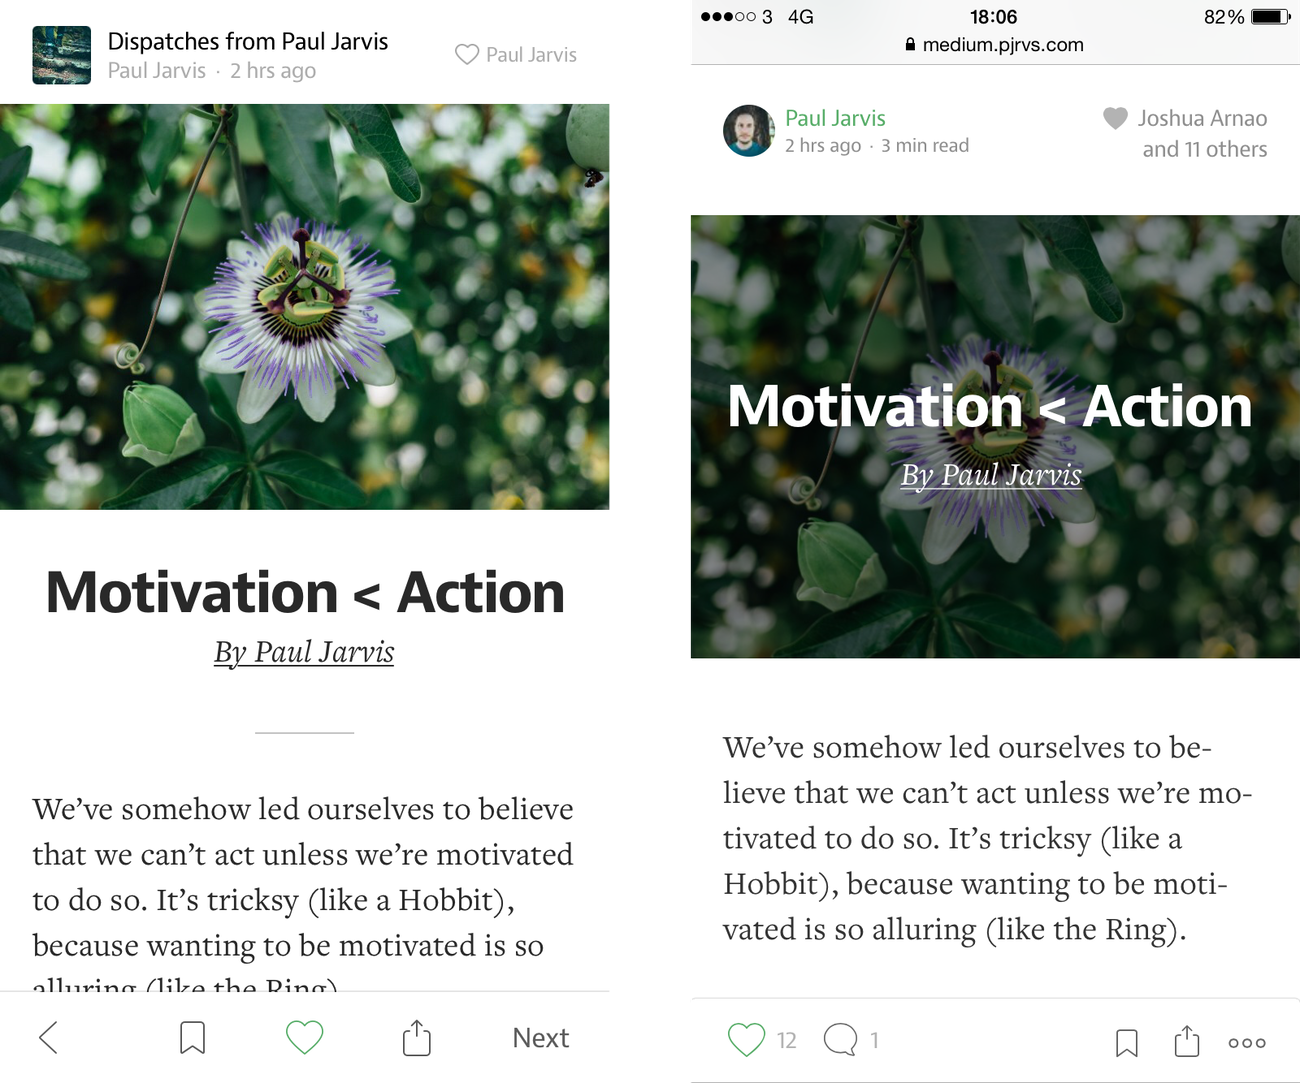 Medium article on mobile app on the left and mobile web on the right